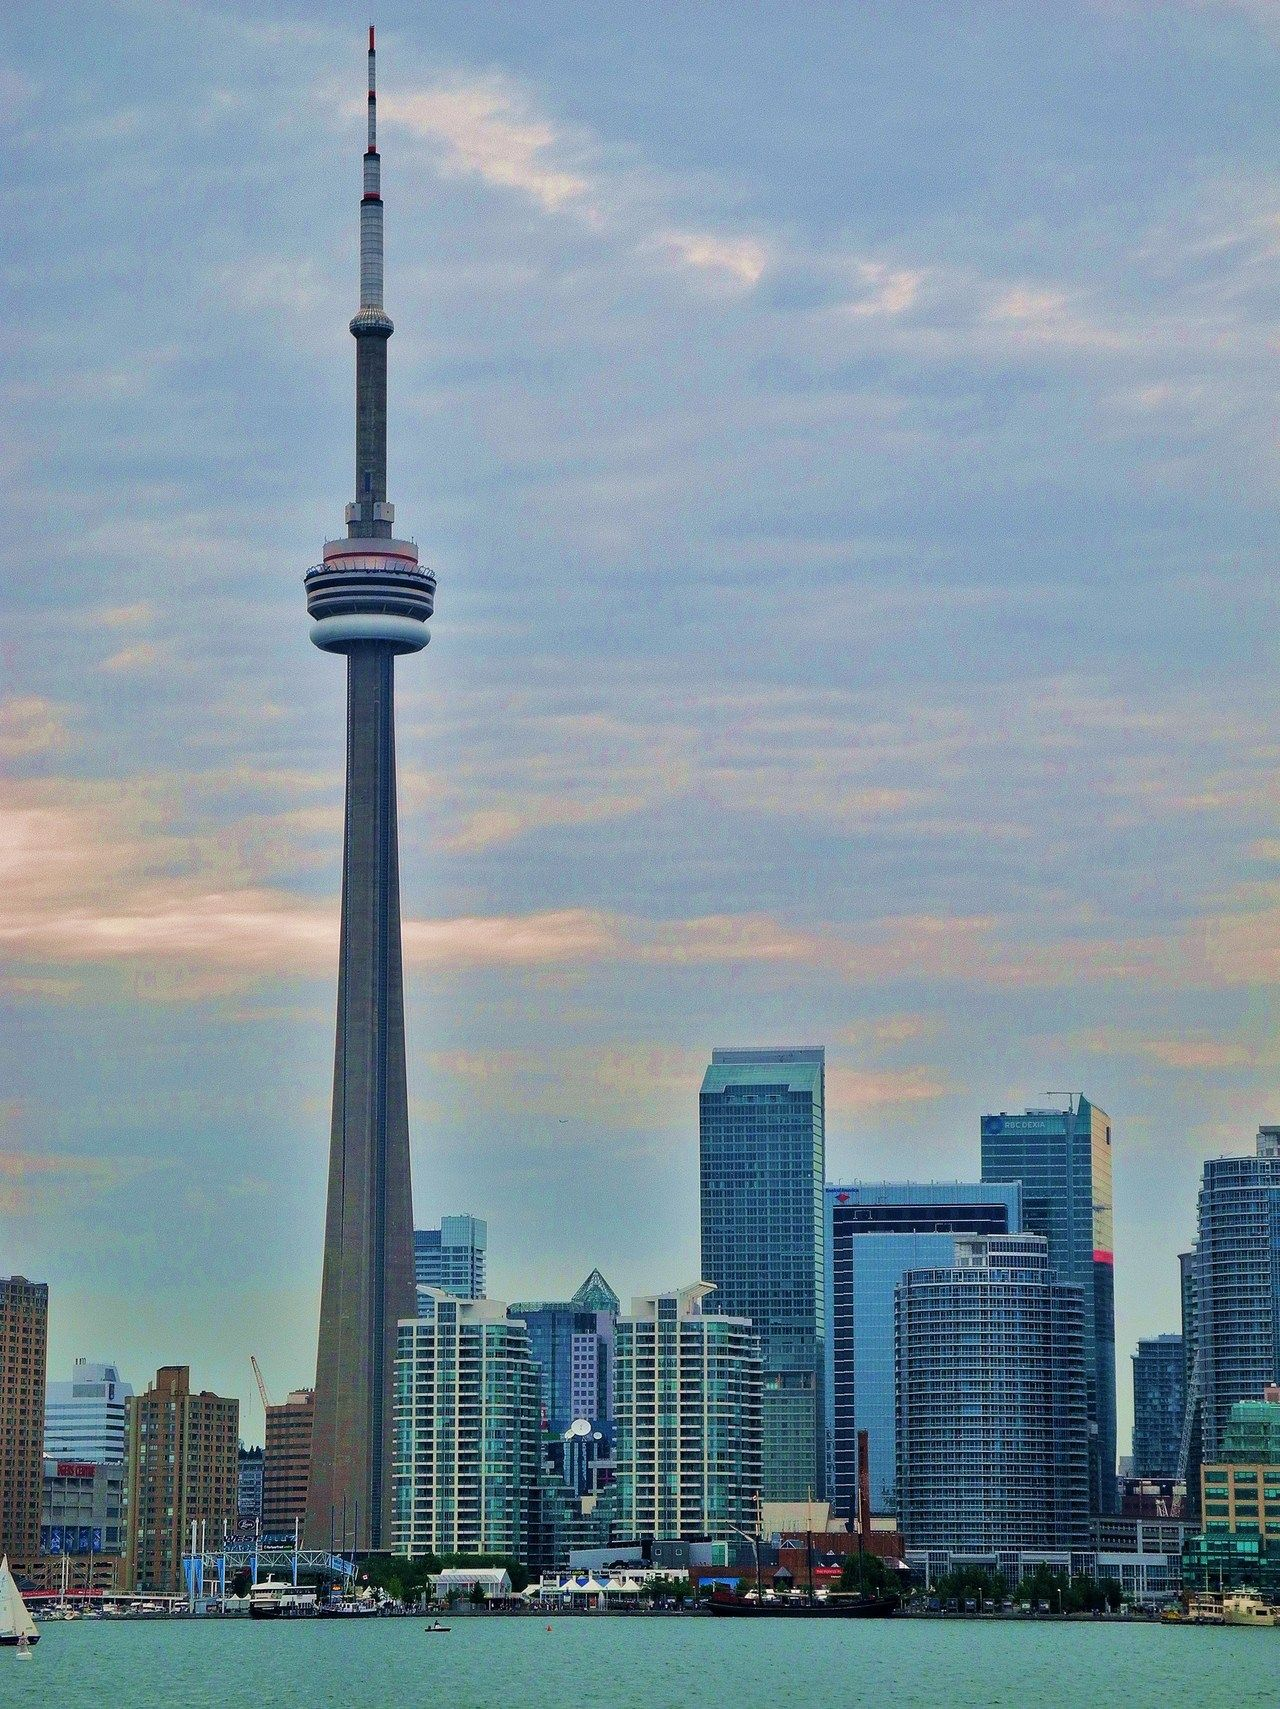 Travel To Canada S Wonder Of The World The Cn Tower In